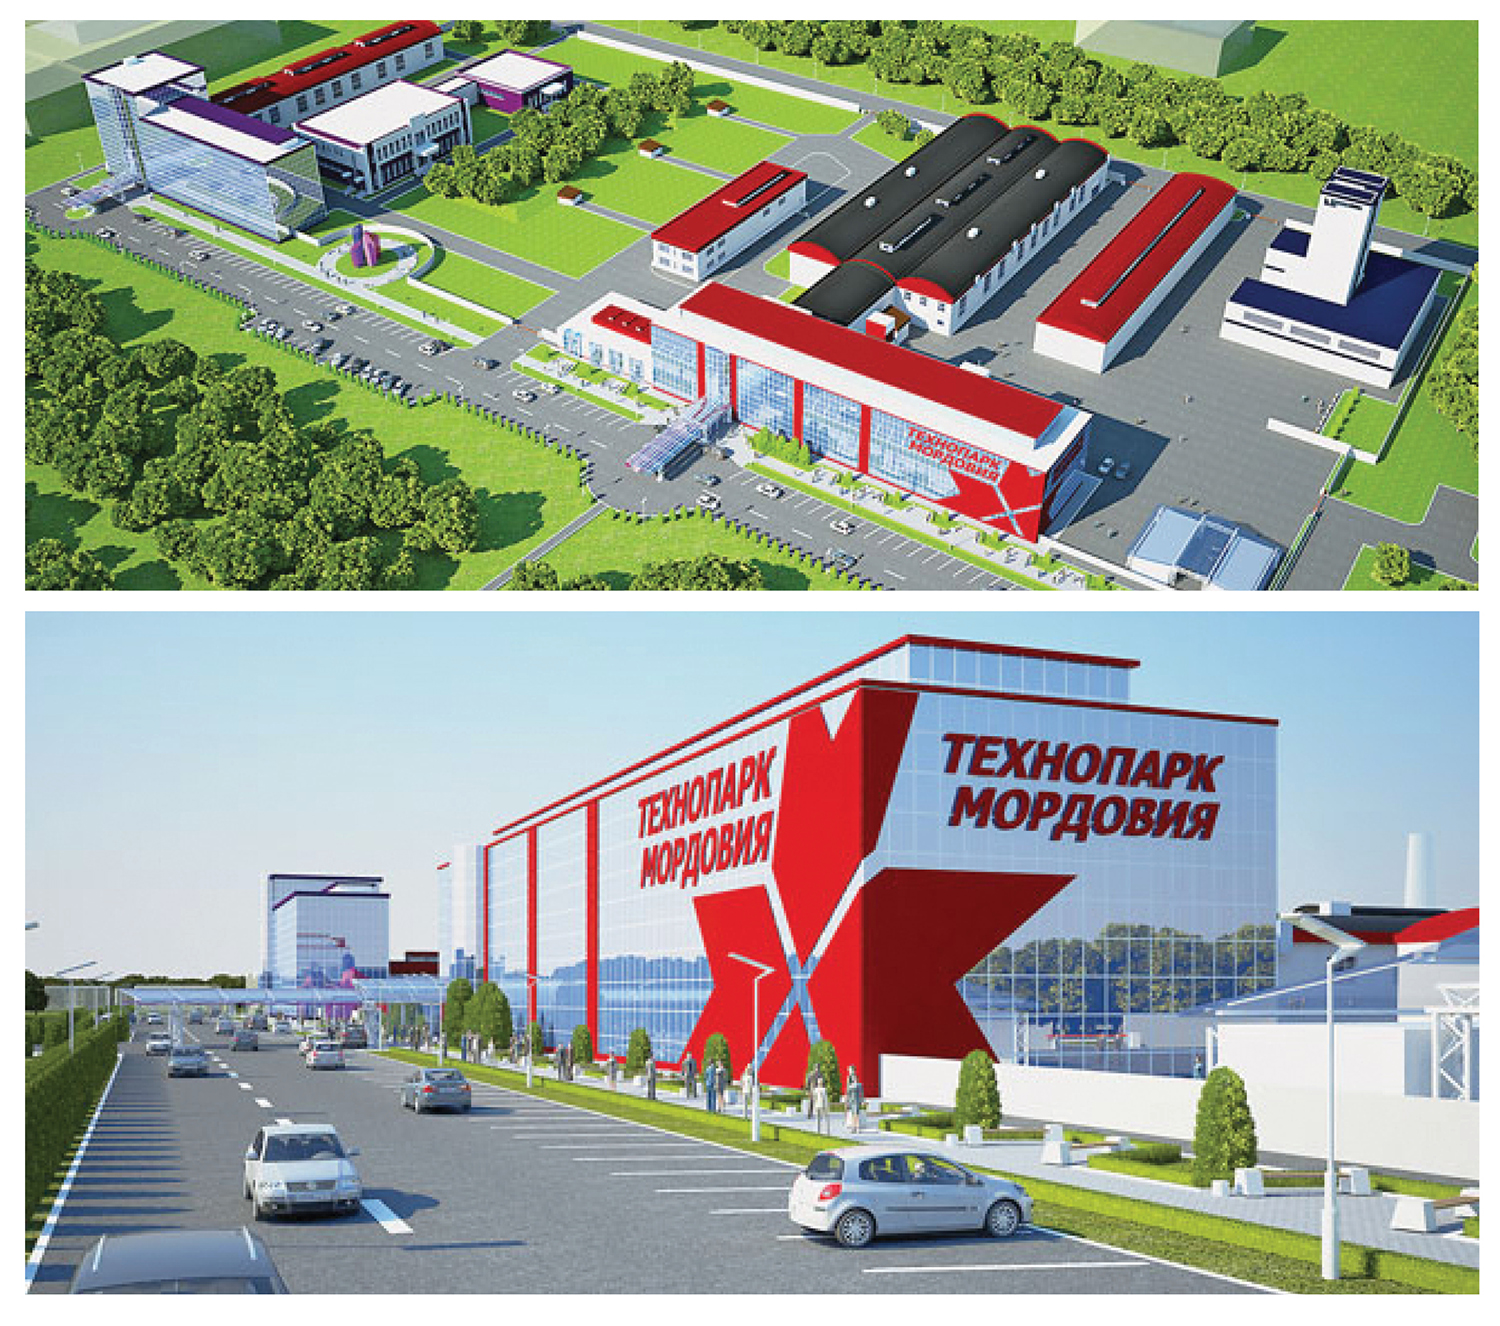 technopark-datacenter-renderings